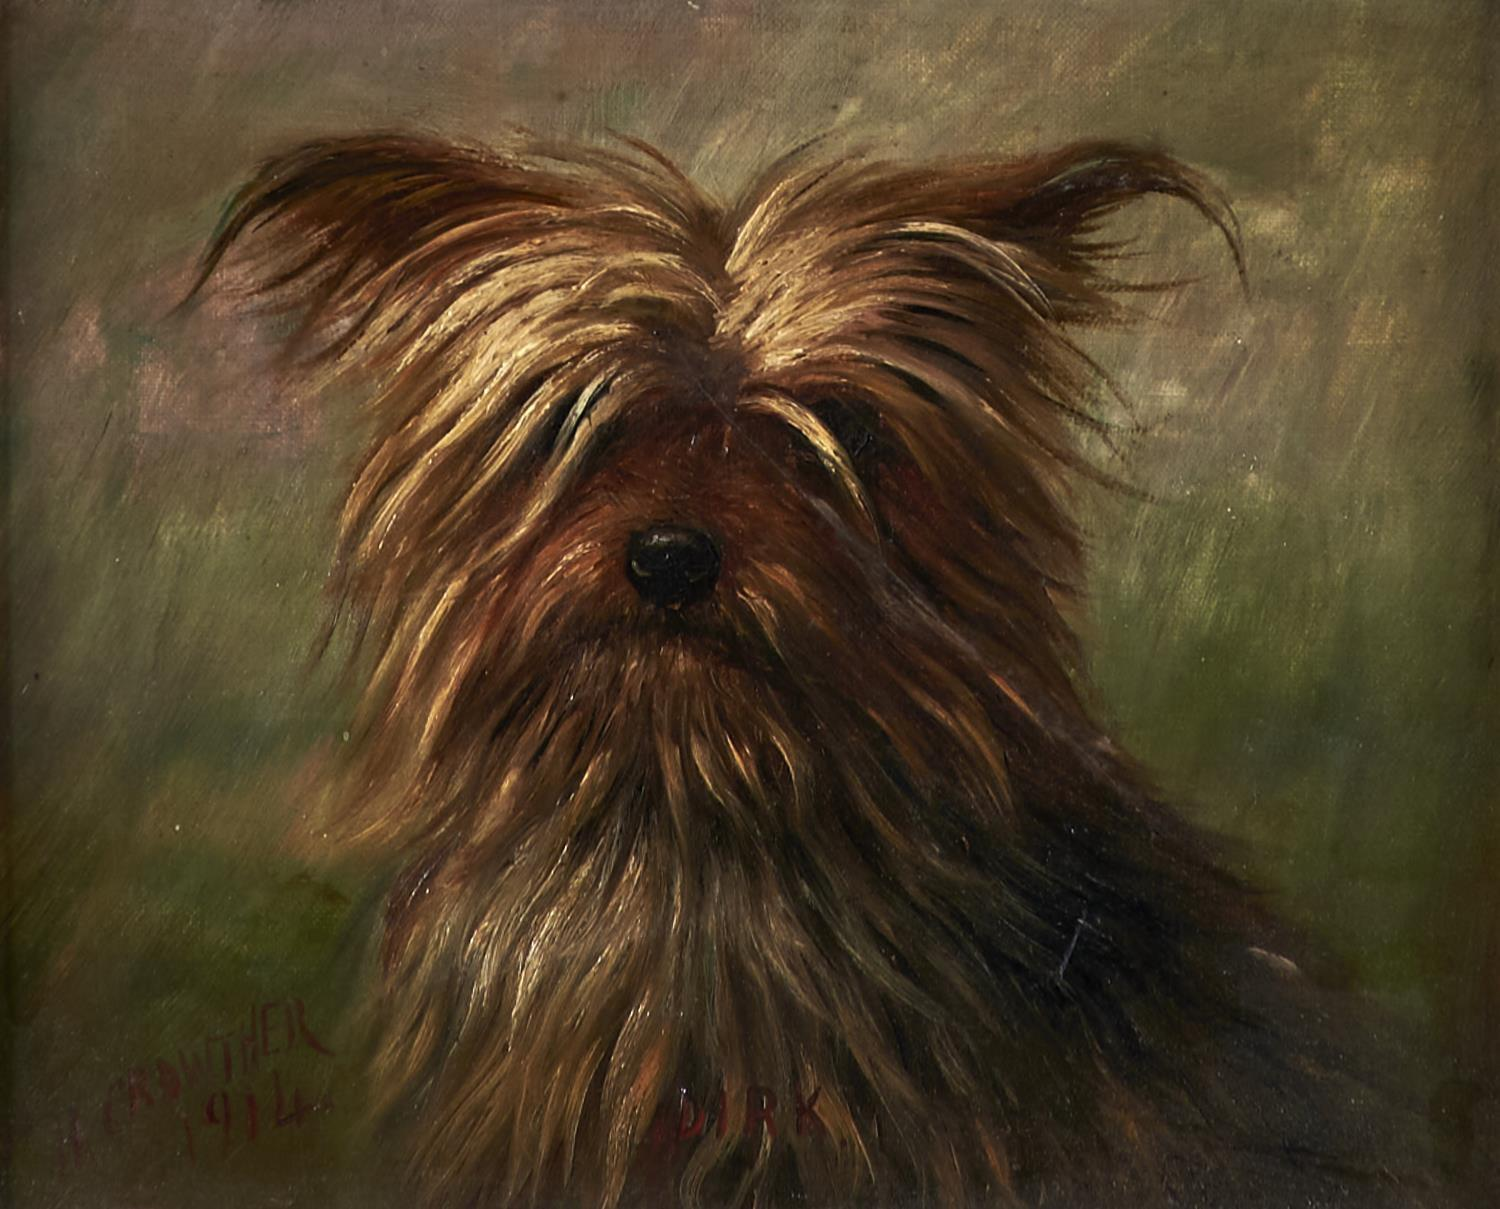 """HENRY CROWTHER, FL 1875-1933 - """"DIRK"""", A YORKSHIRE TERRIER, SIGNED, DATED 1914 AND INSCRIBED (IN"""